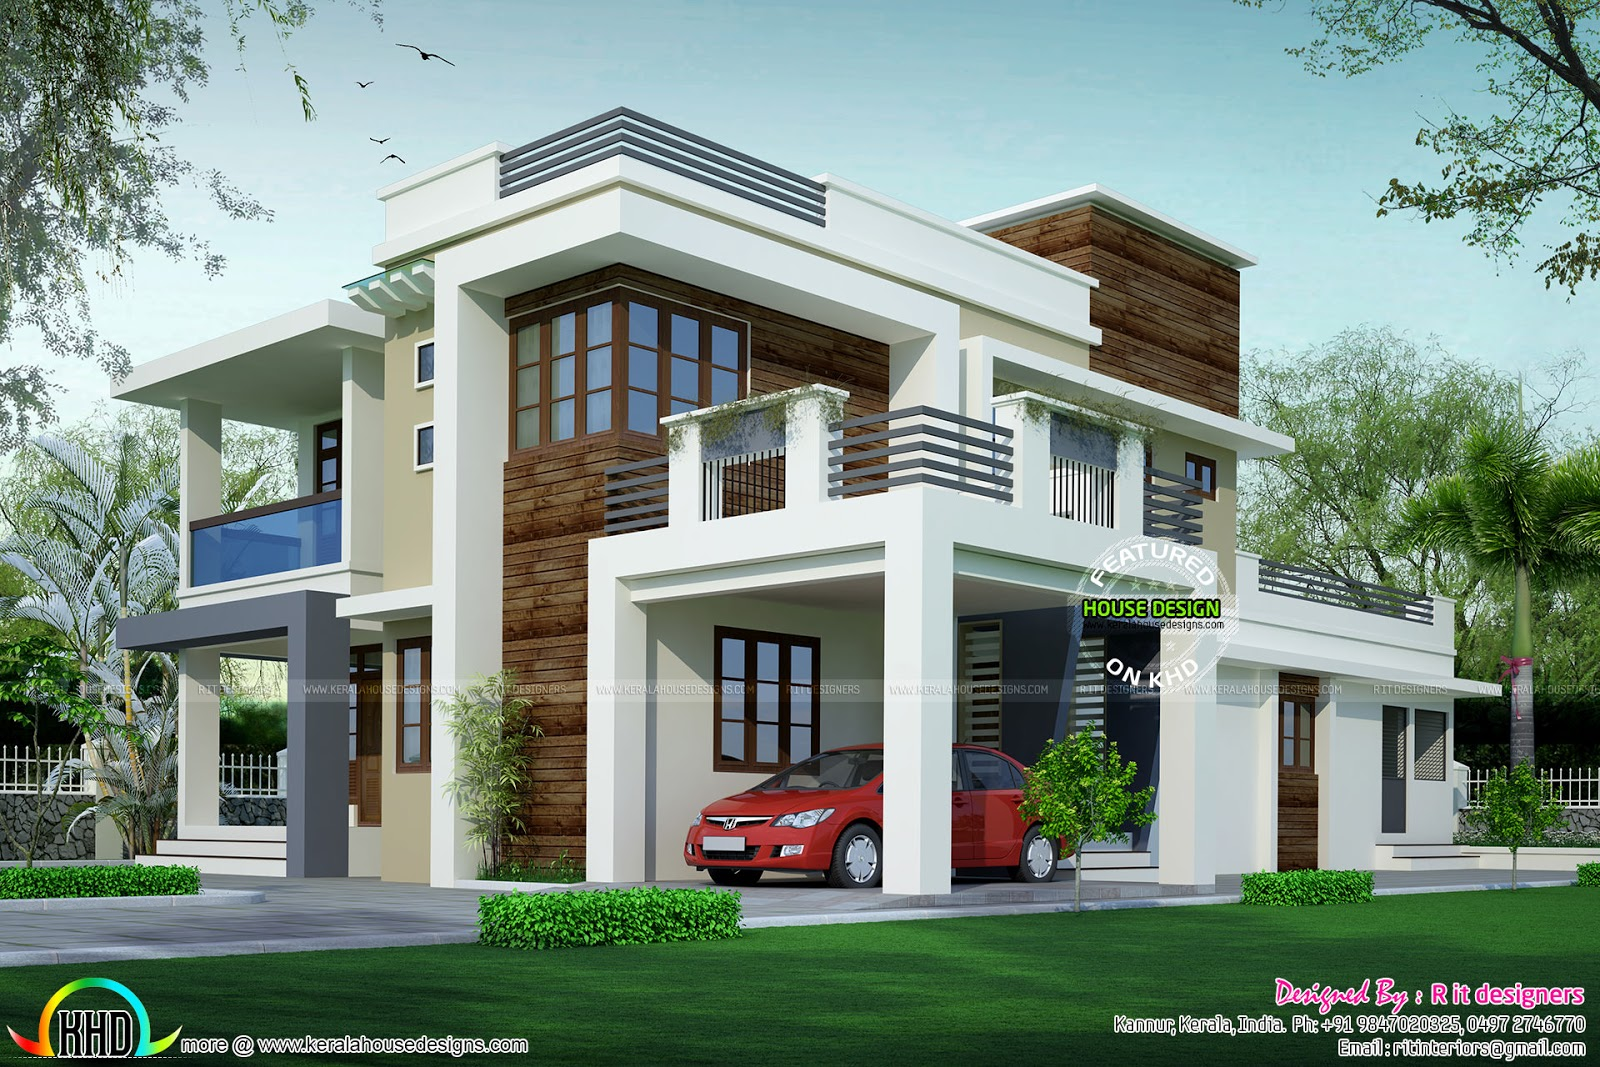 House design contemporary model kerala home design and for Model house design